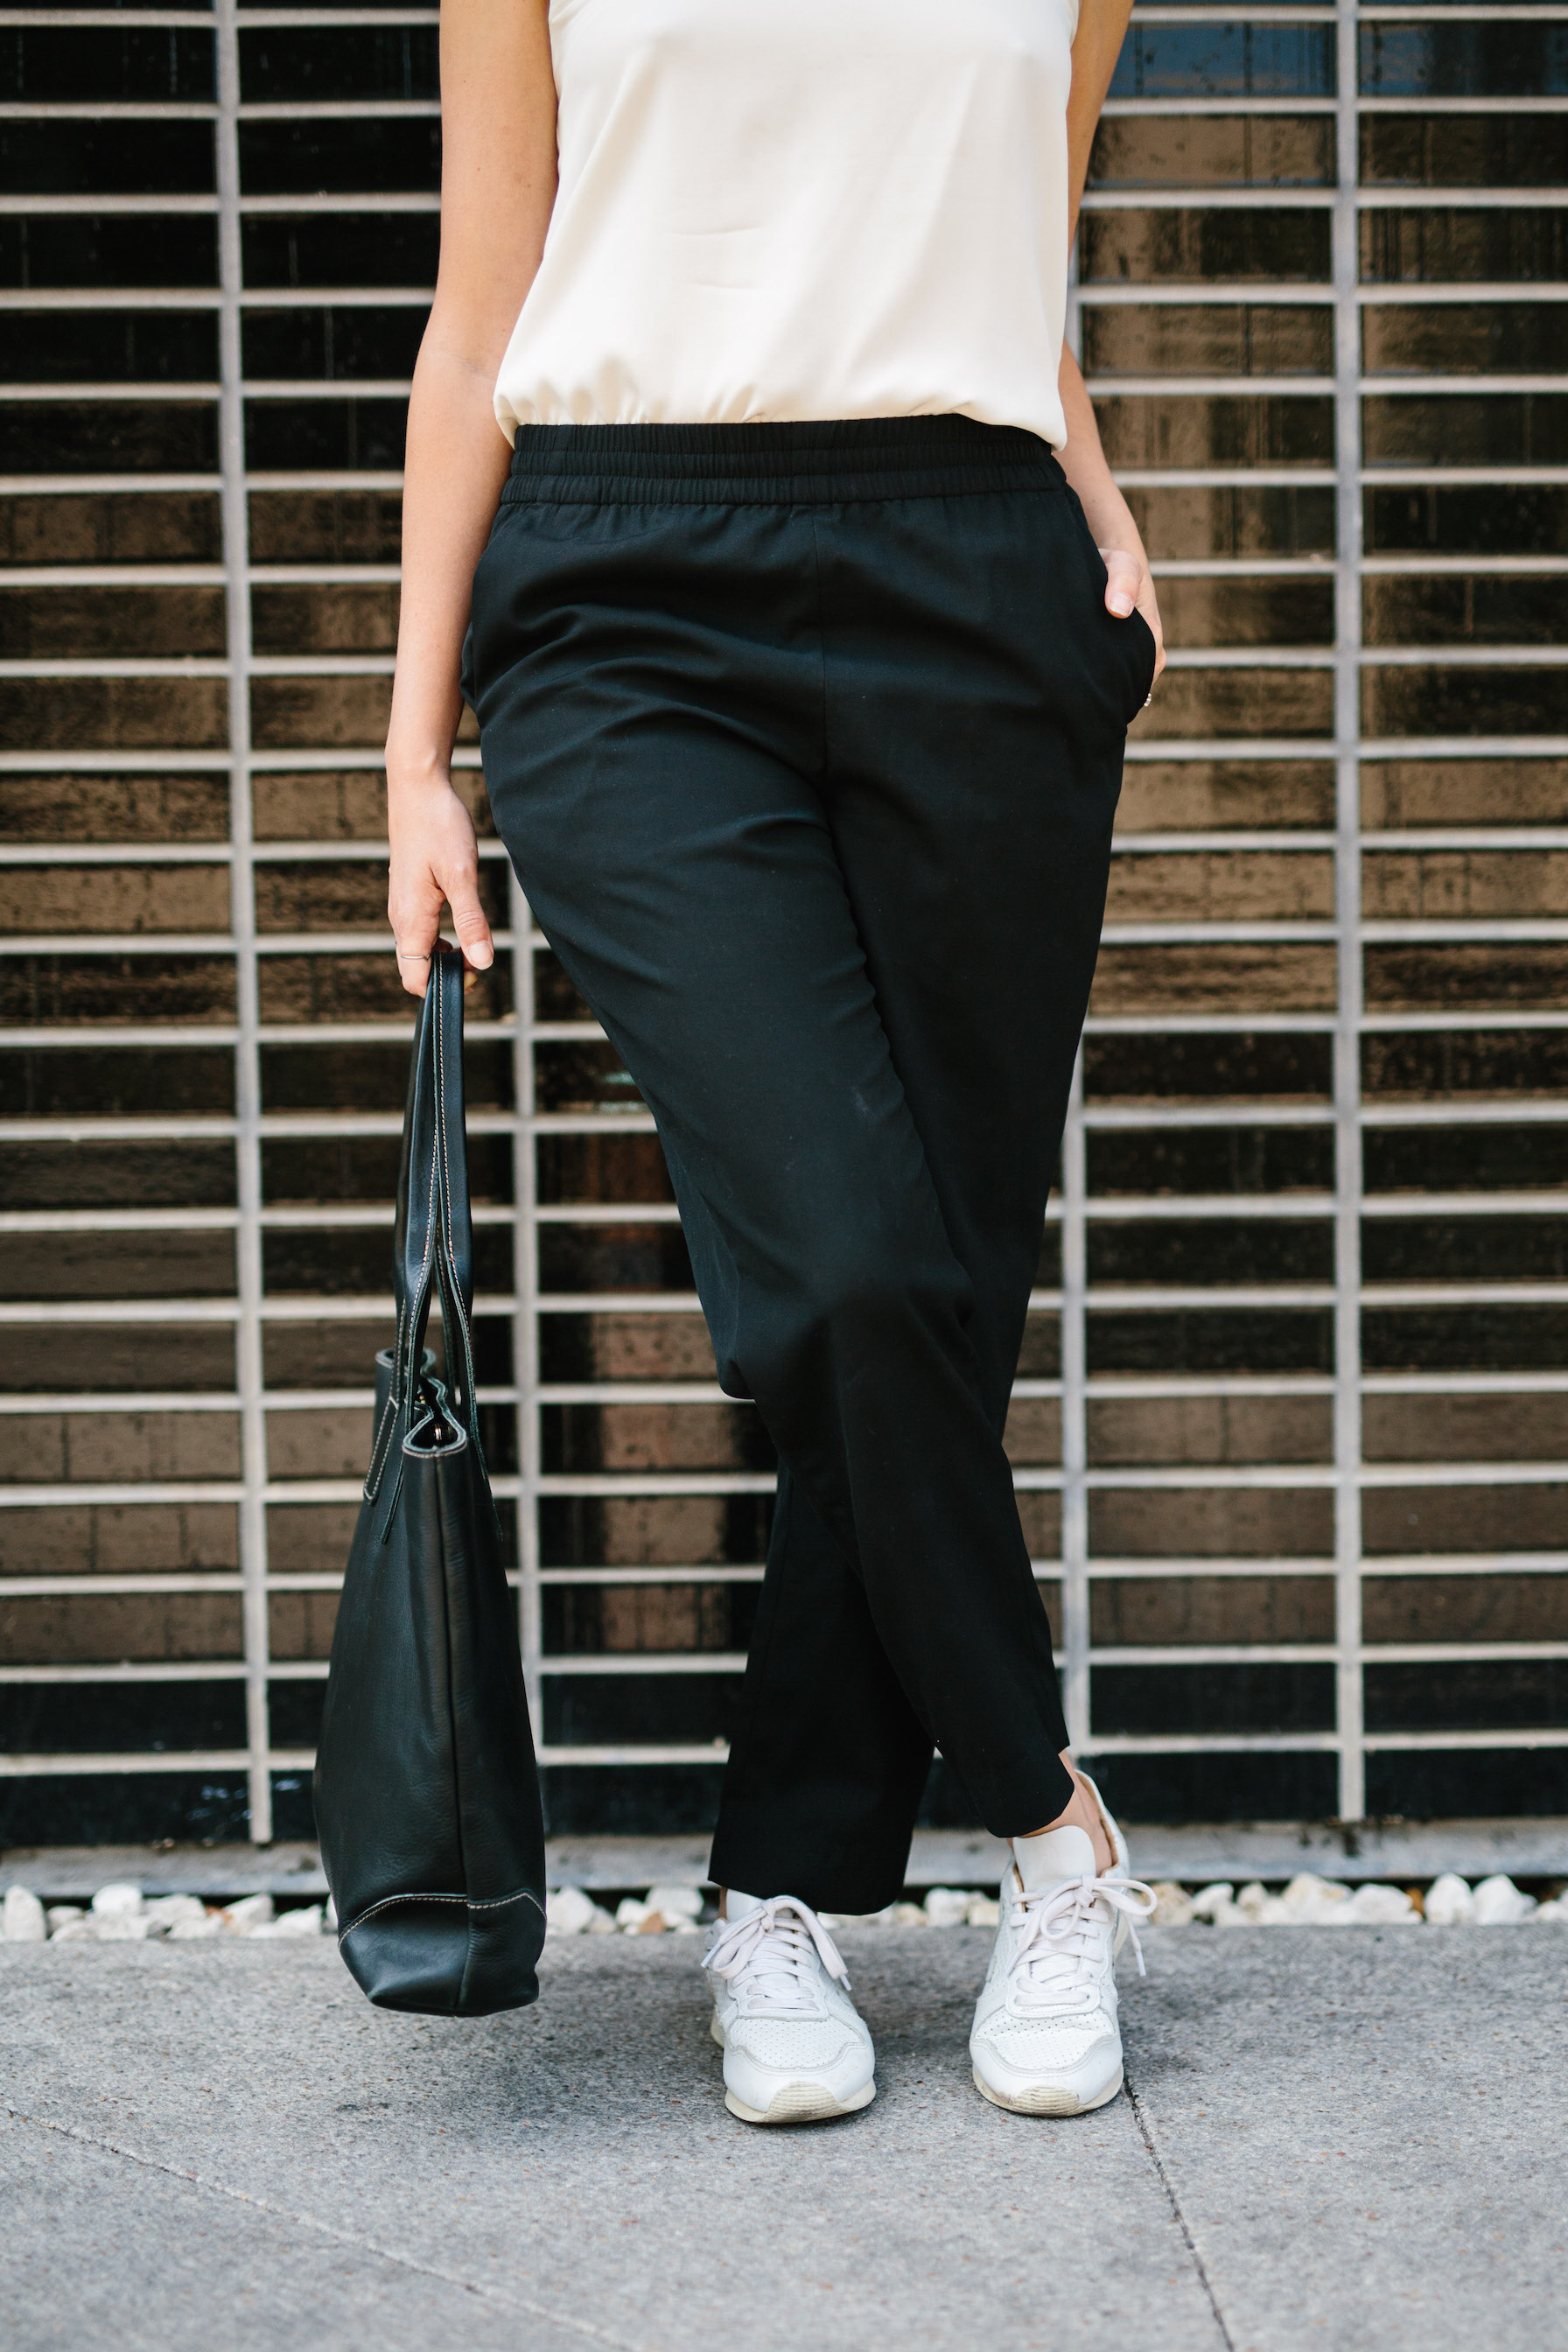 Artisan leather bag with a monochrome outfit // A Week Of Summertime Minimalist Outfits With Ava Darnell, Founder Of Slumlove Sweater Company on The Good Trade